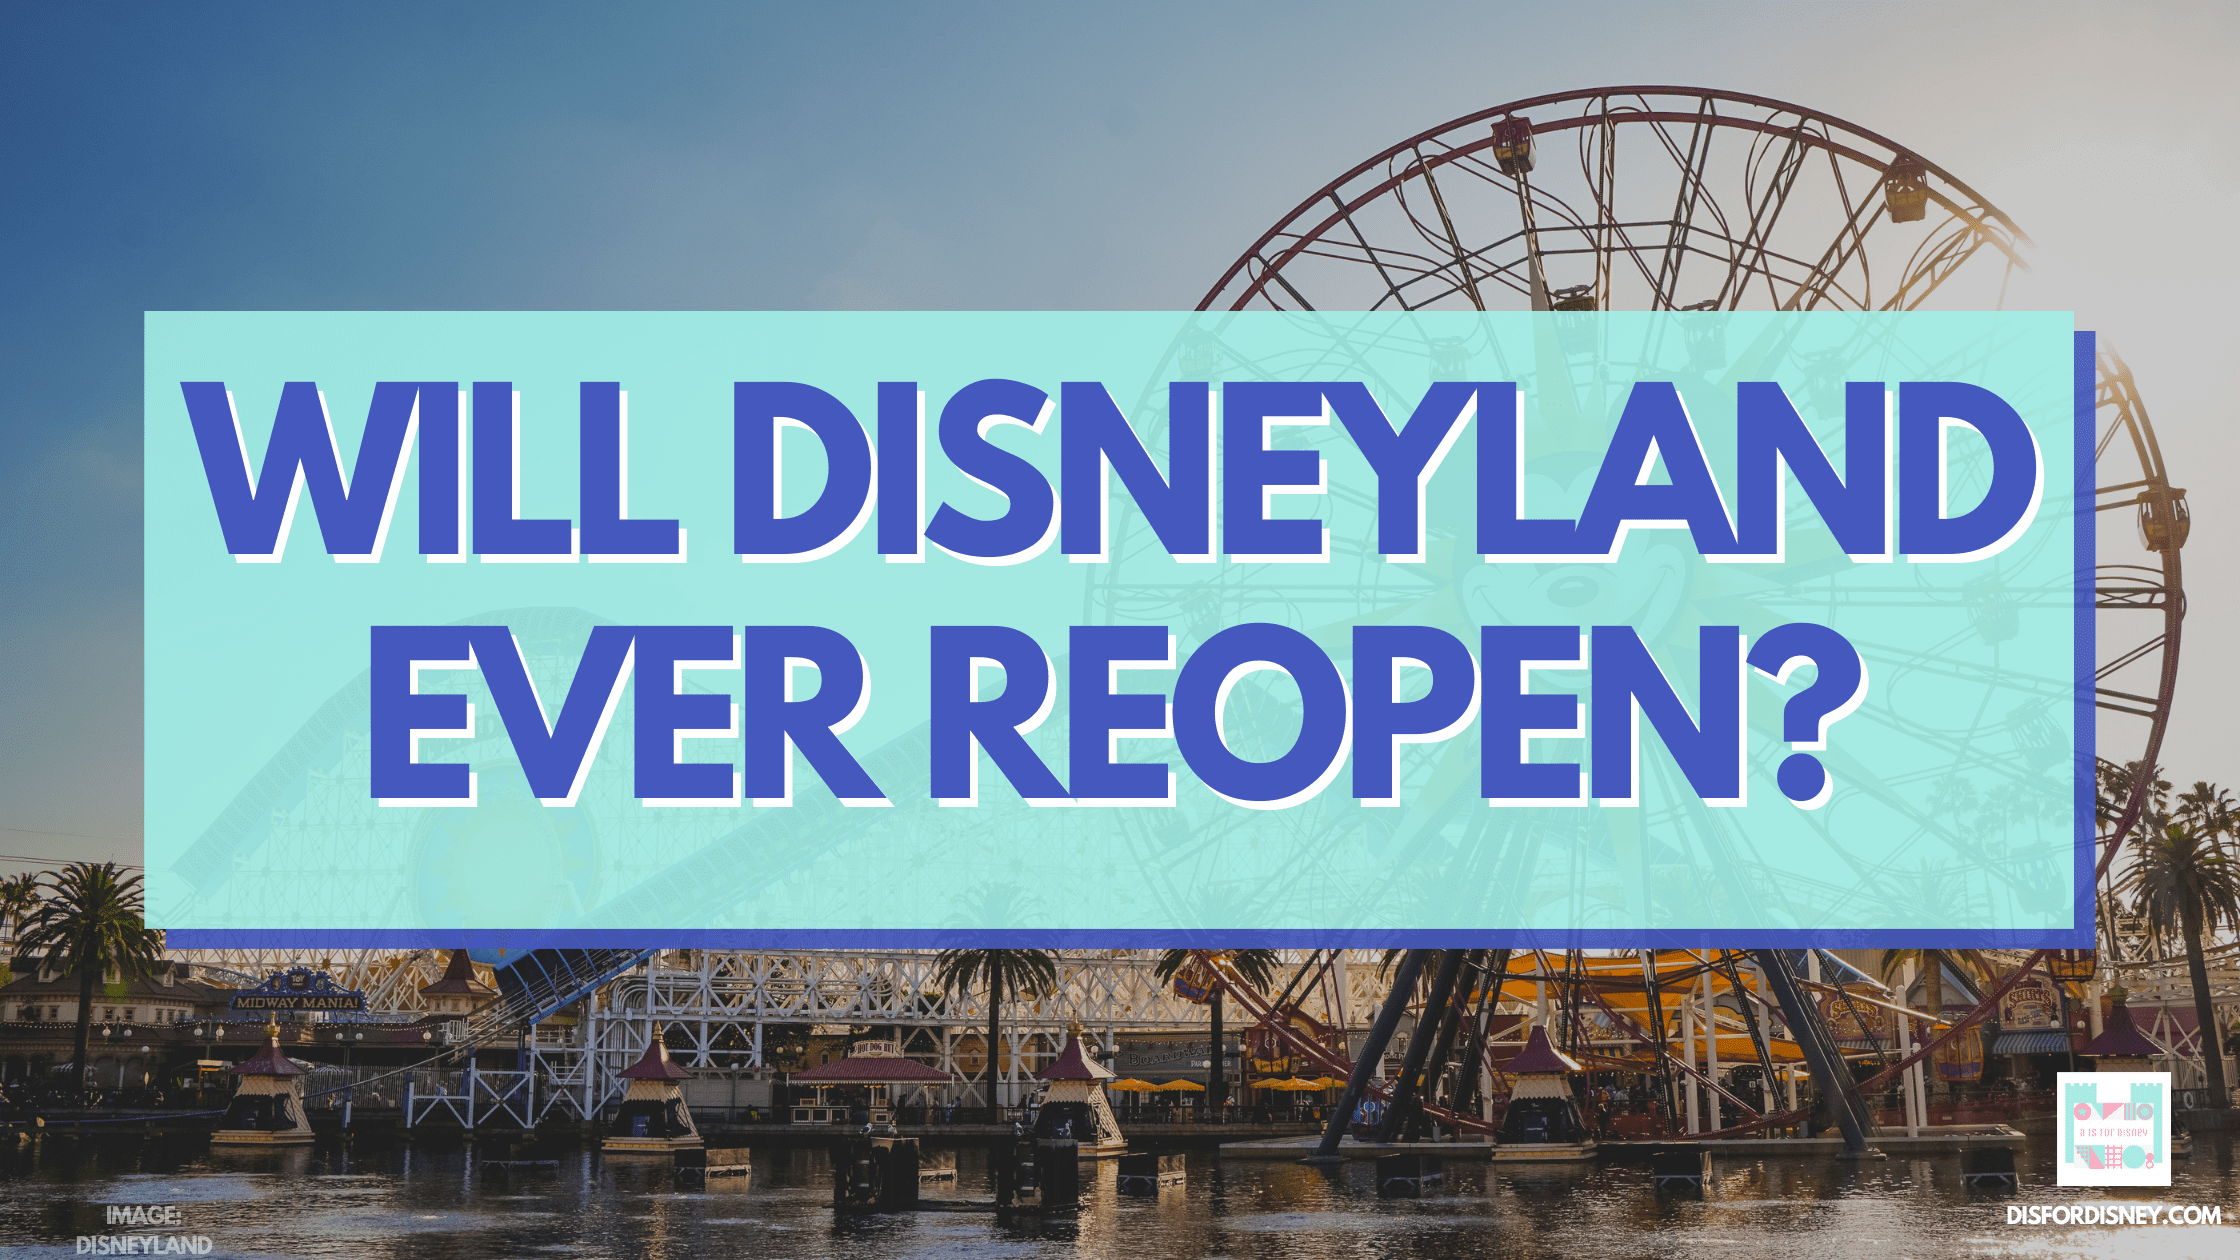 Will Disneyland Ever Reopen?